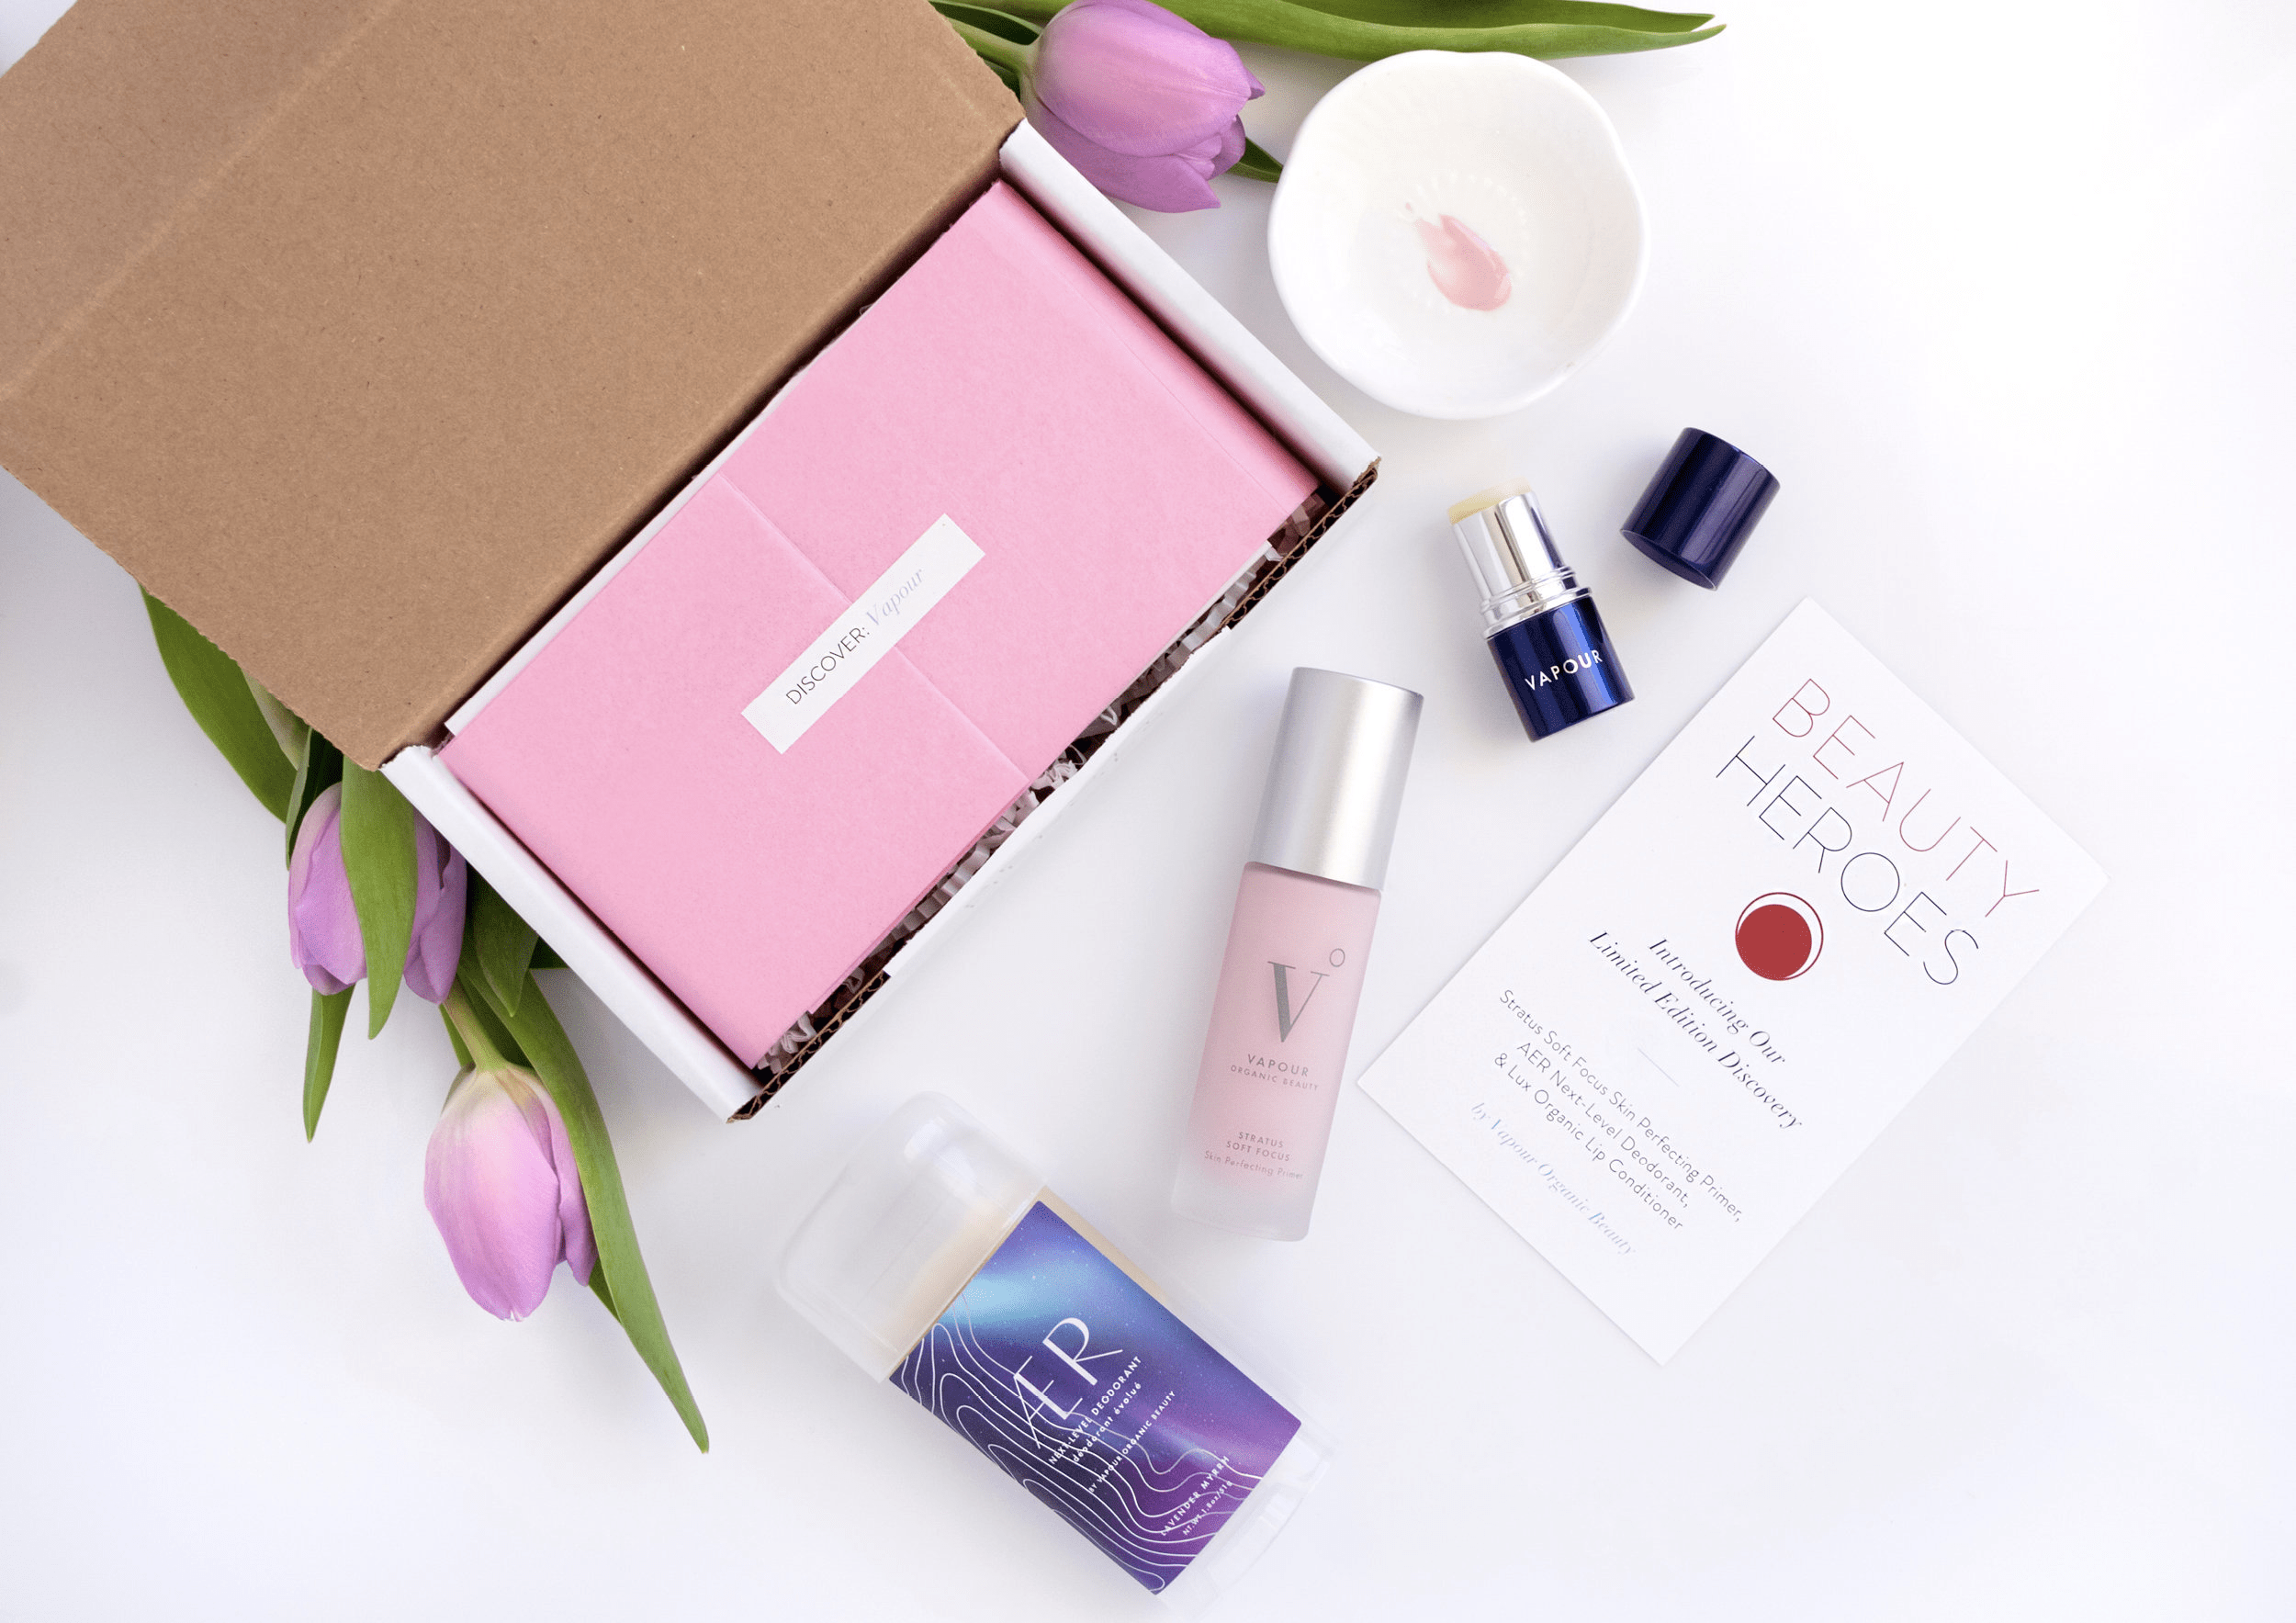 Beauty Heroes April 2018 Makeup Discovery Available Now!